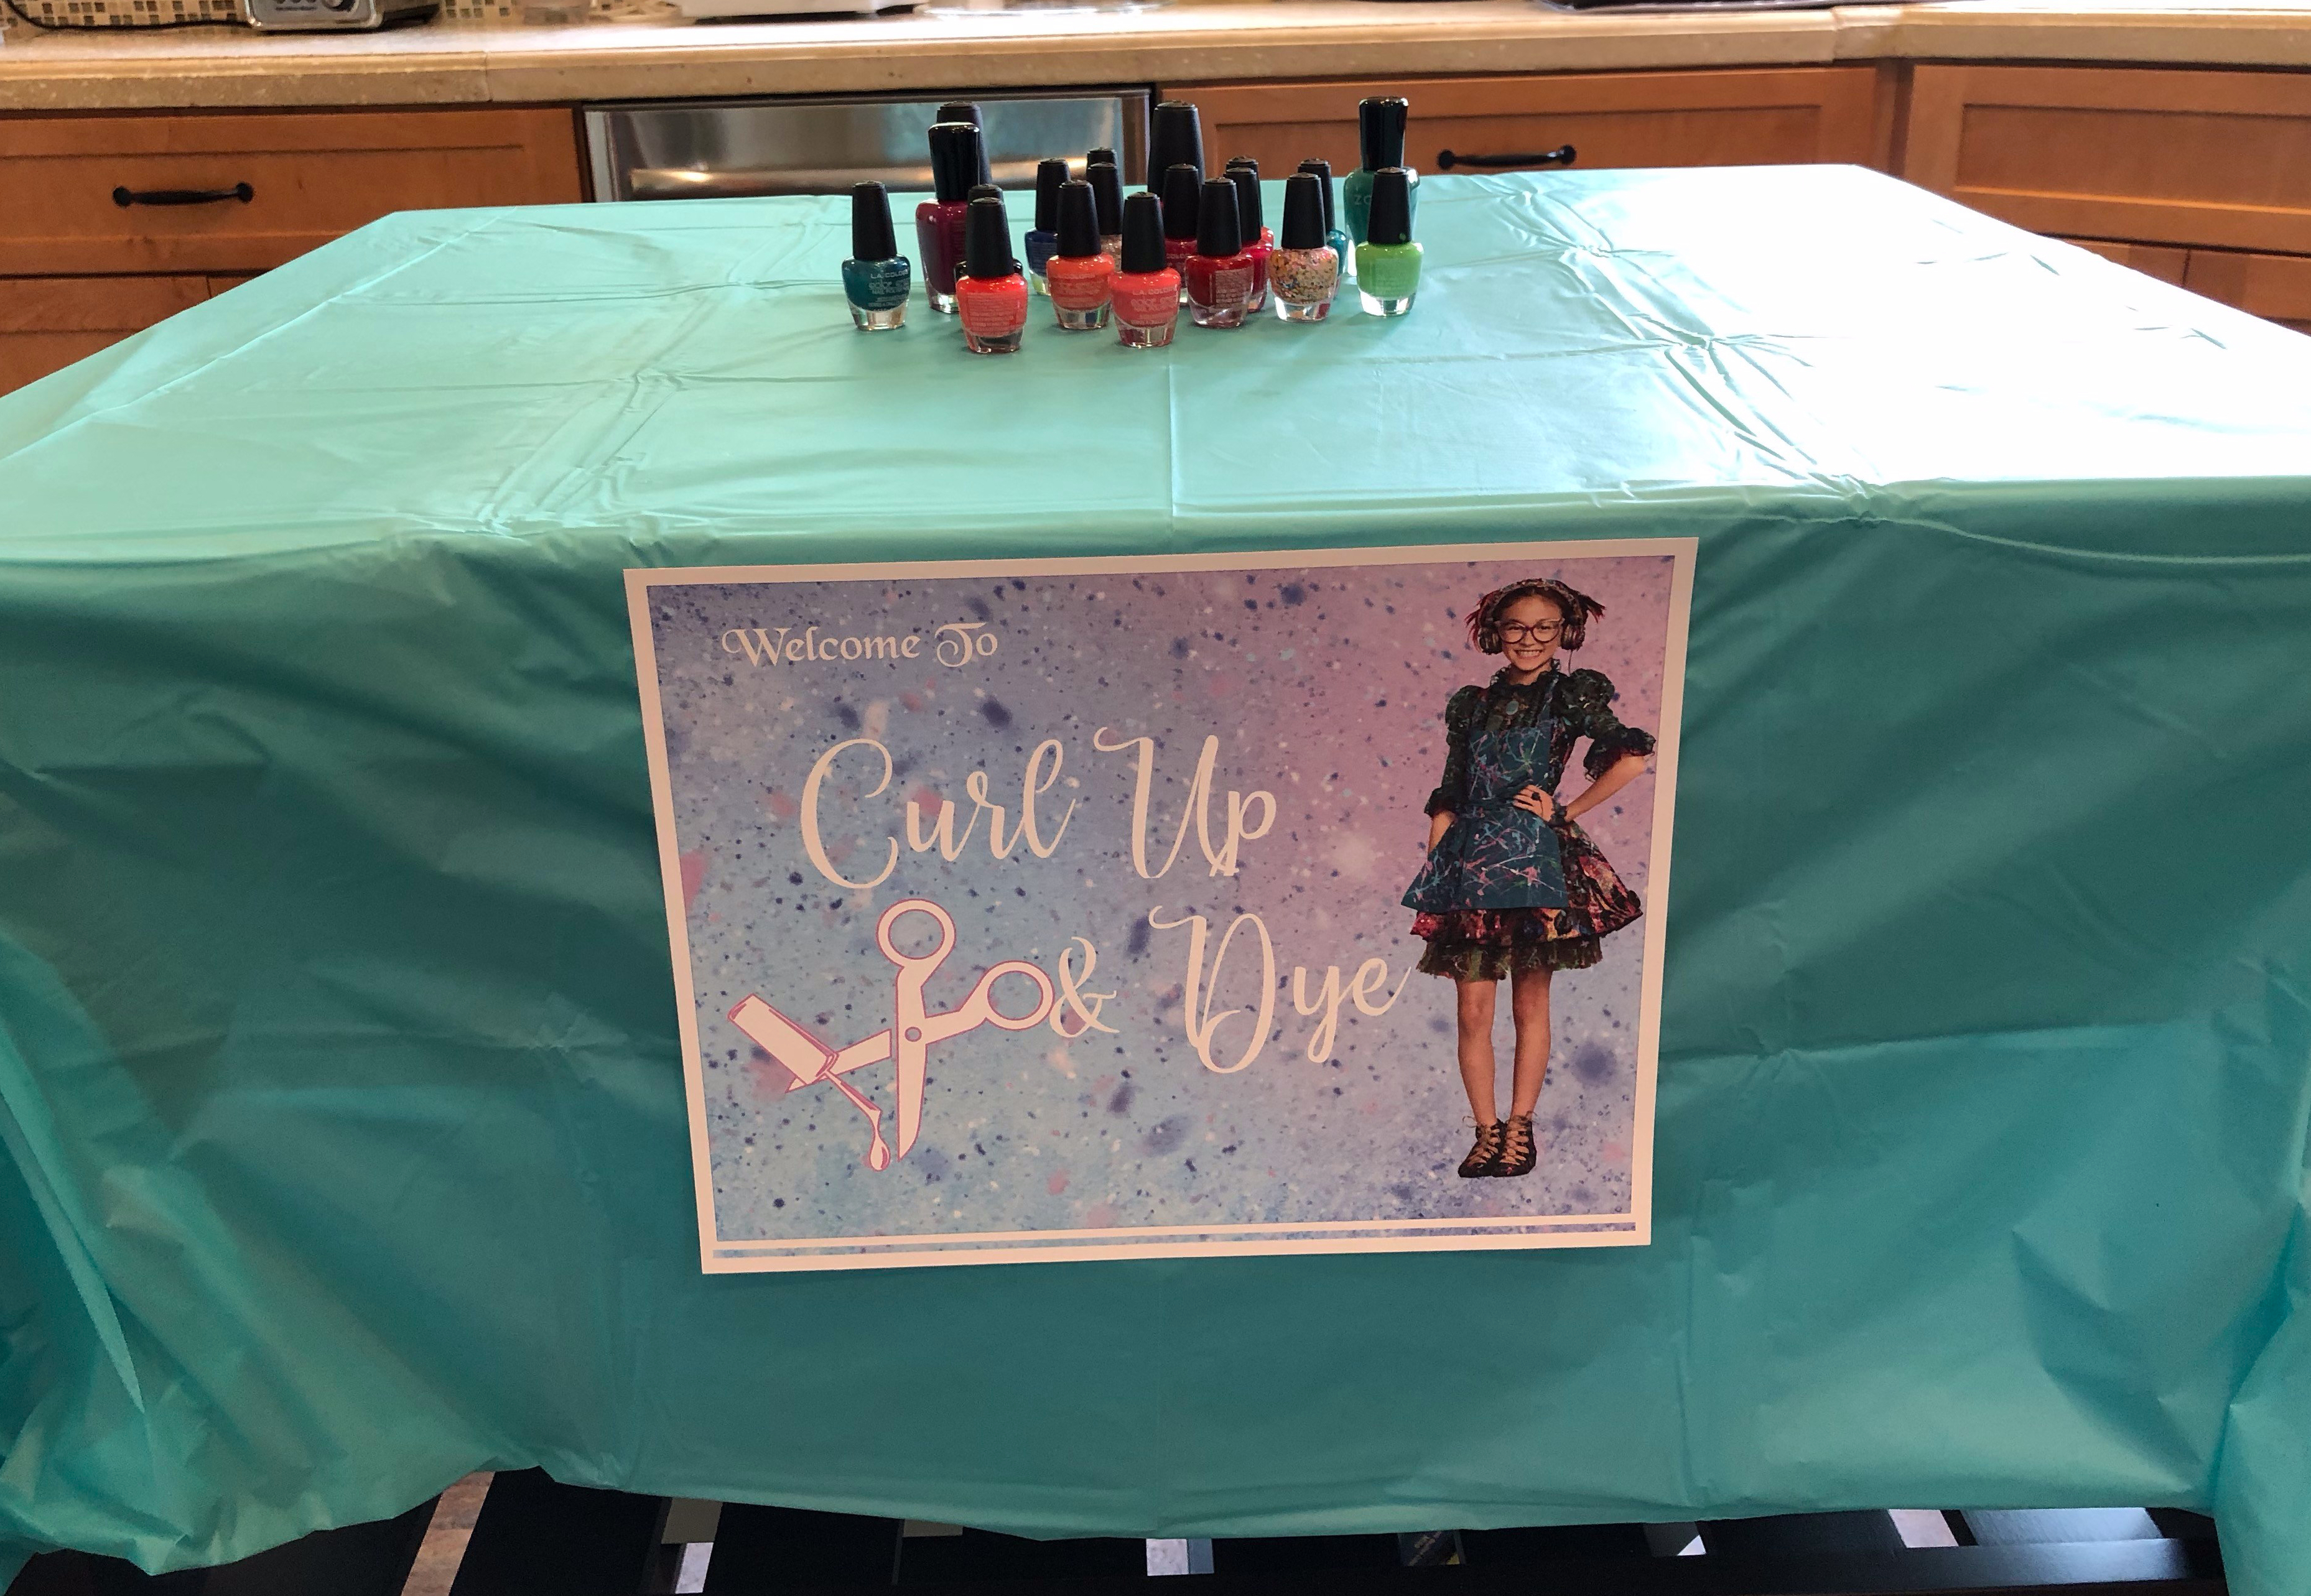 Descendants party activity table based on a character